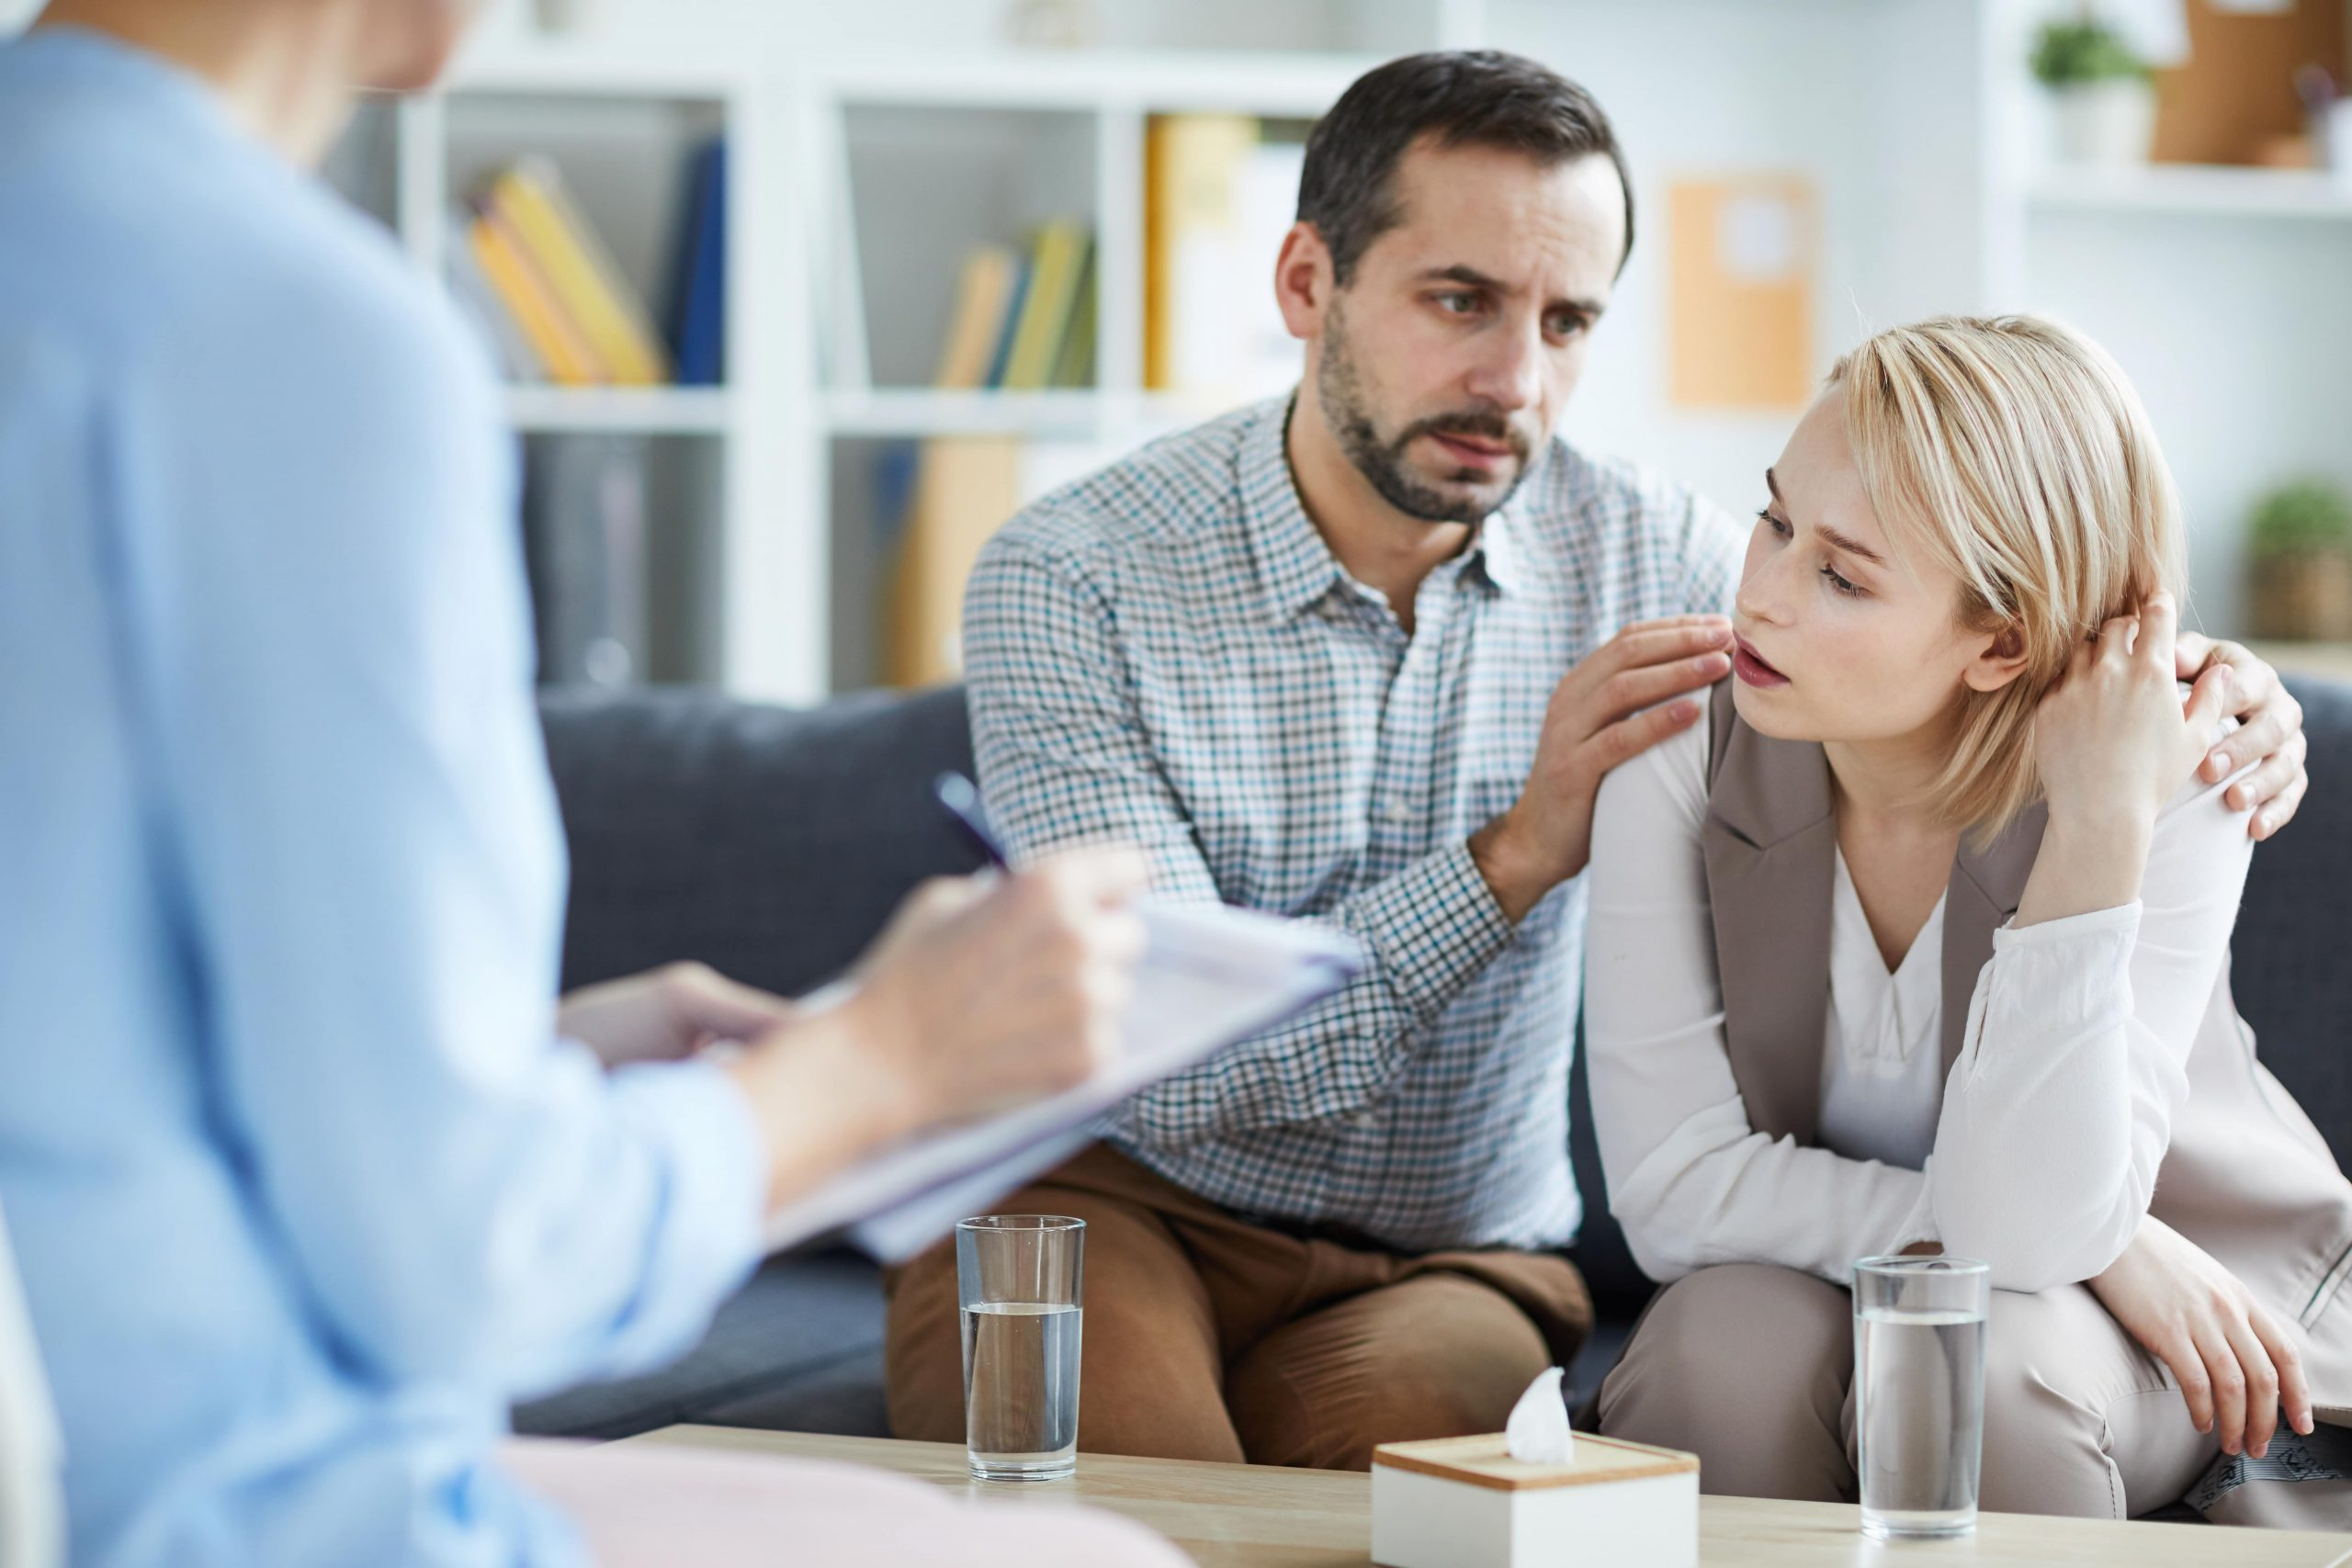 Stressed wife and husband at fertility consultation discussing mental health